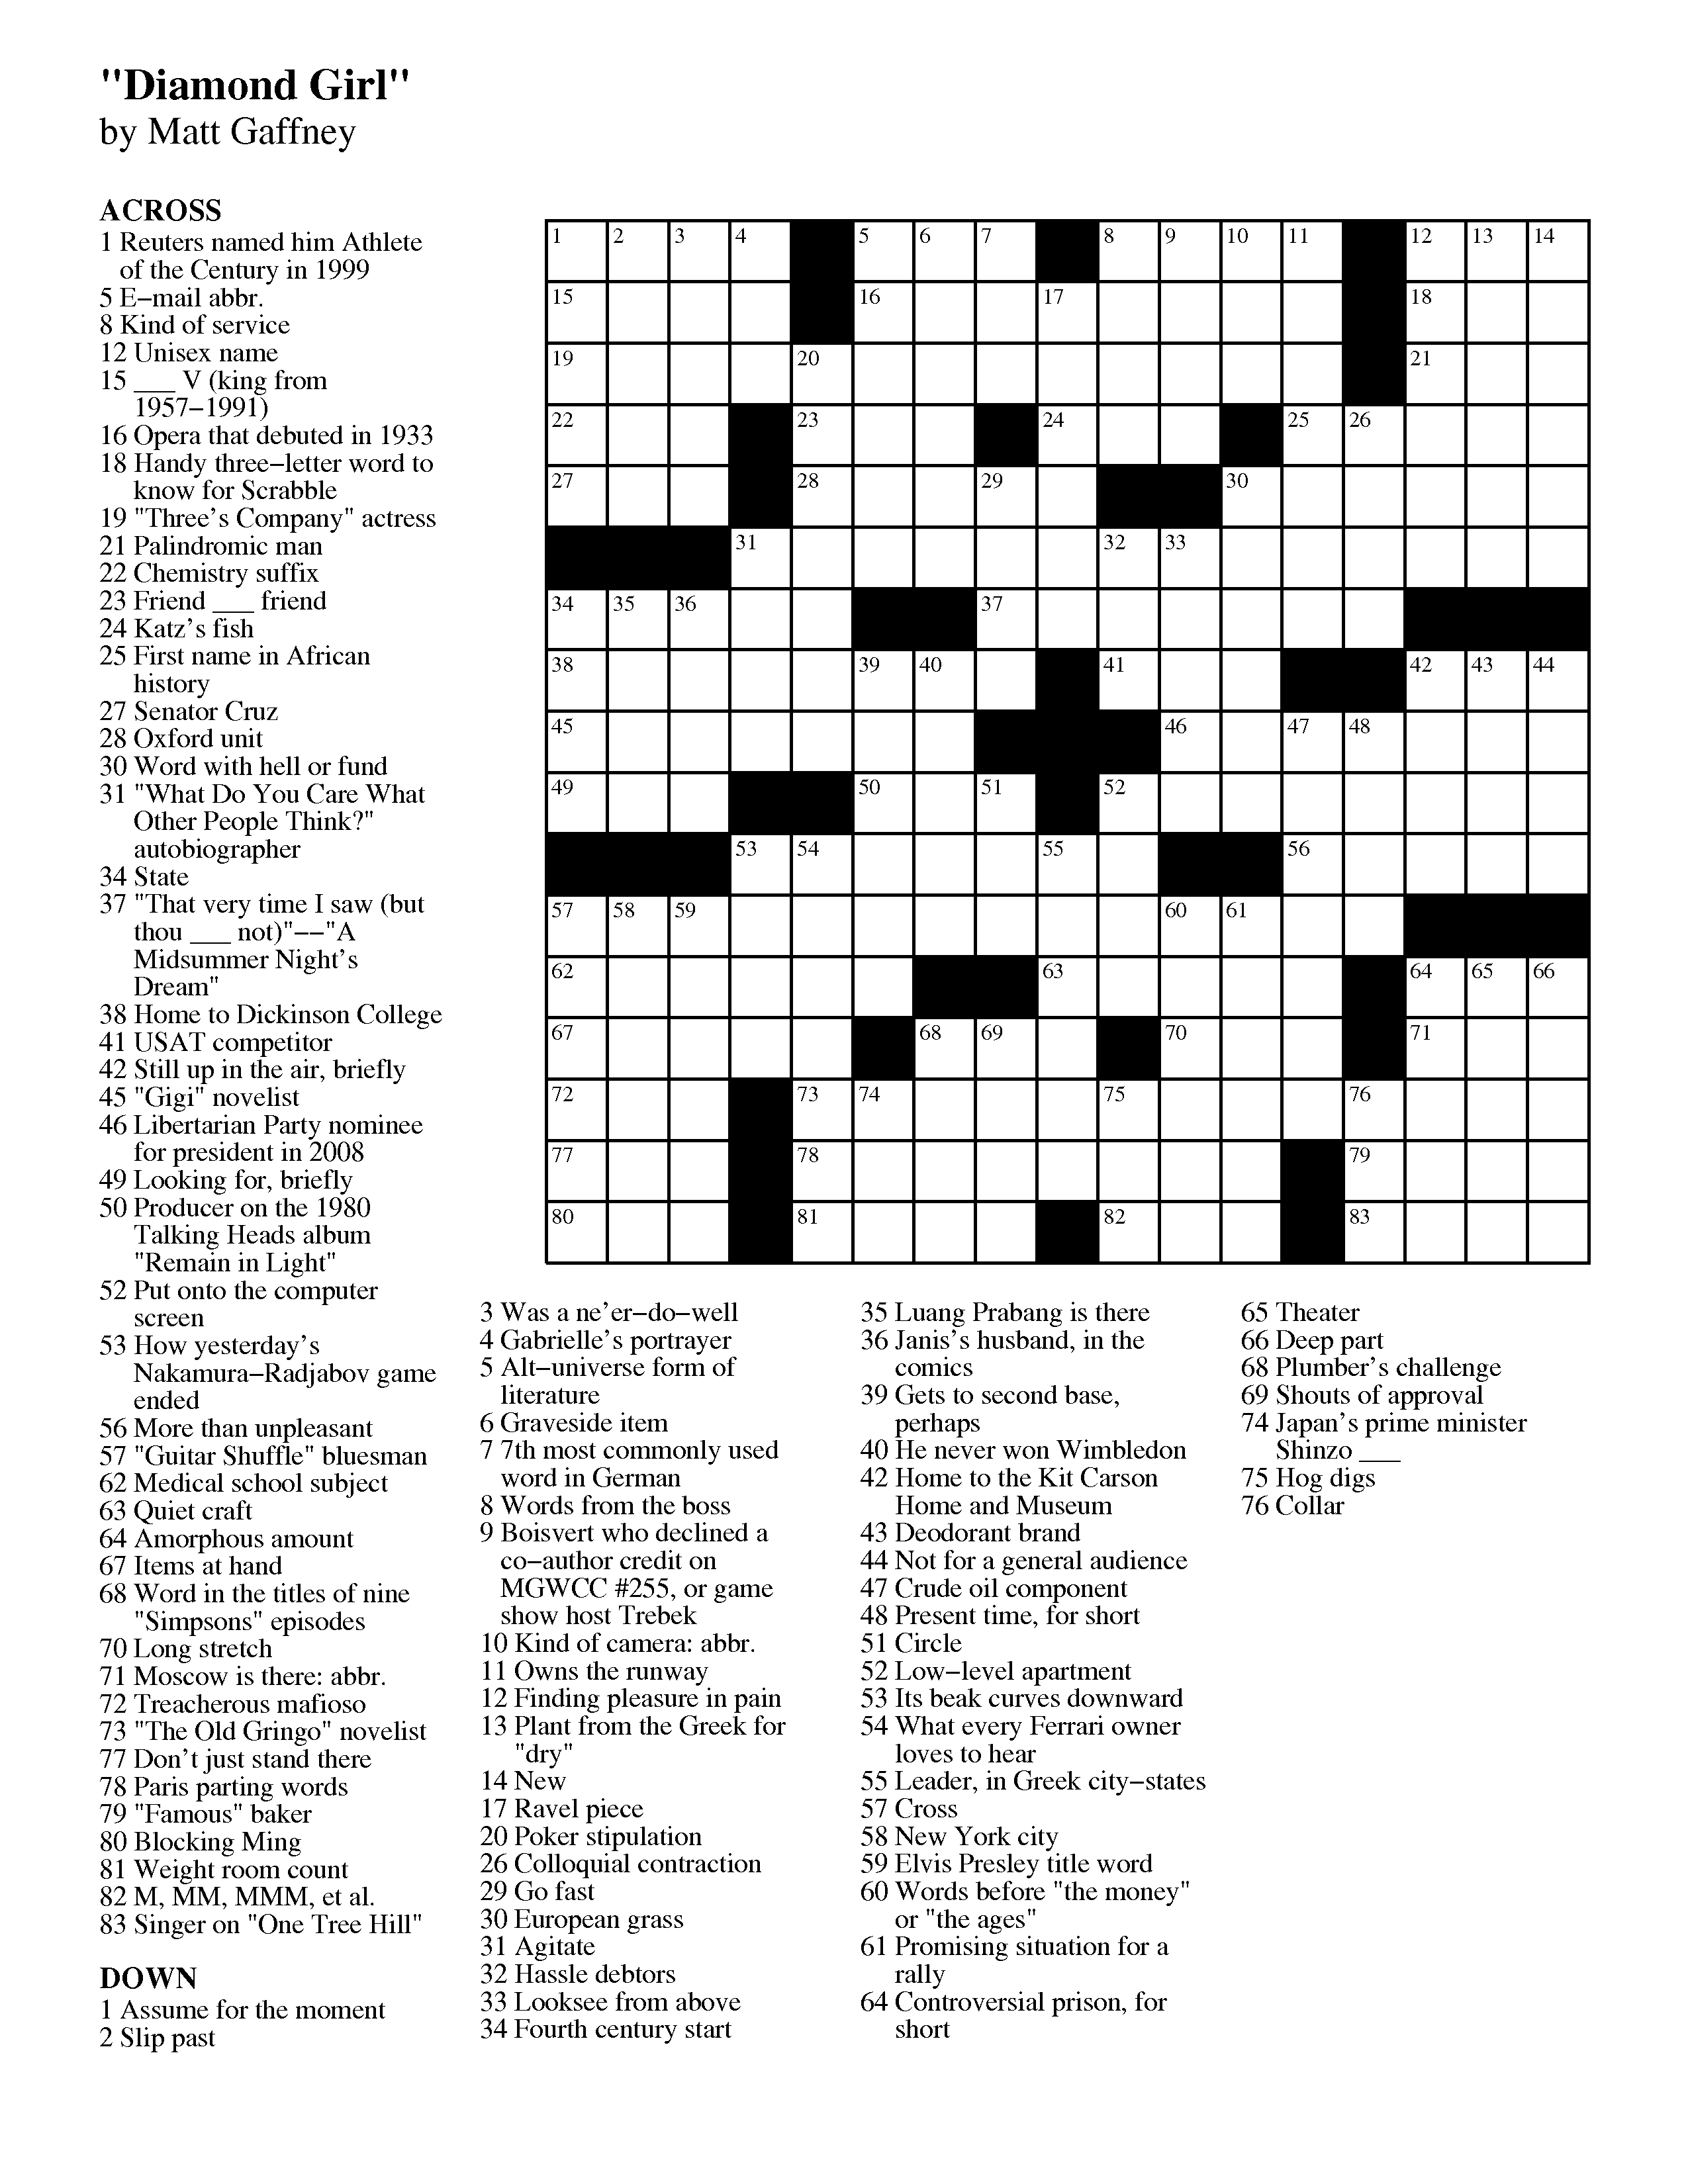 Crossword Puzzles Printable - Yahoo Image Search Results   Crossword - Usa Today Daily Printable Crossword Puzzles